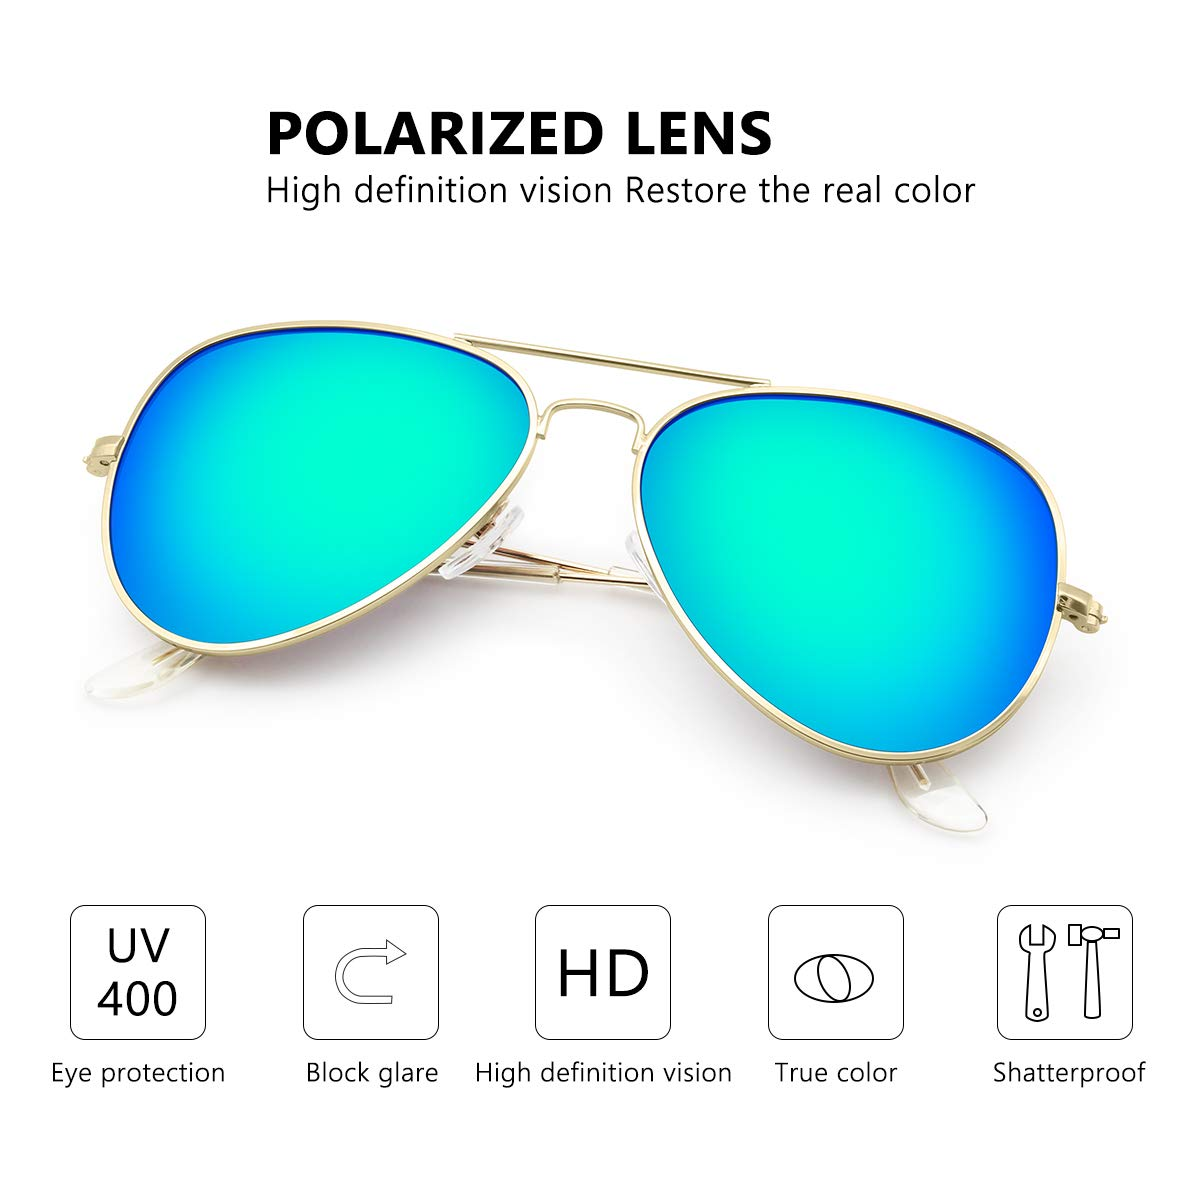 Livhò Sunglasses for Men Women Aviator Polarized Metal Mirror UV 400 Lens Protection (Gold Grey+Blue Green) by Livhò (Image #4)